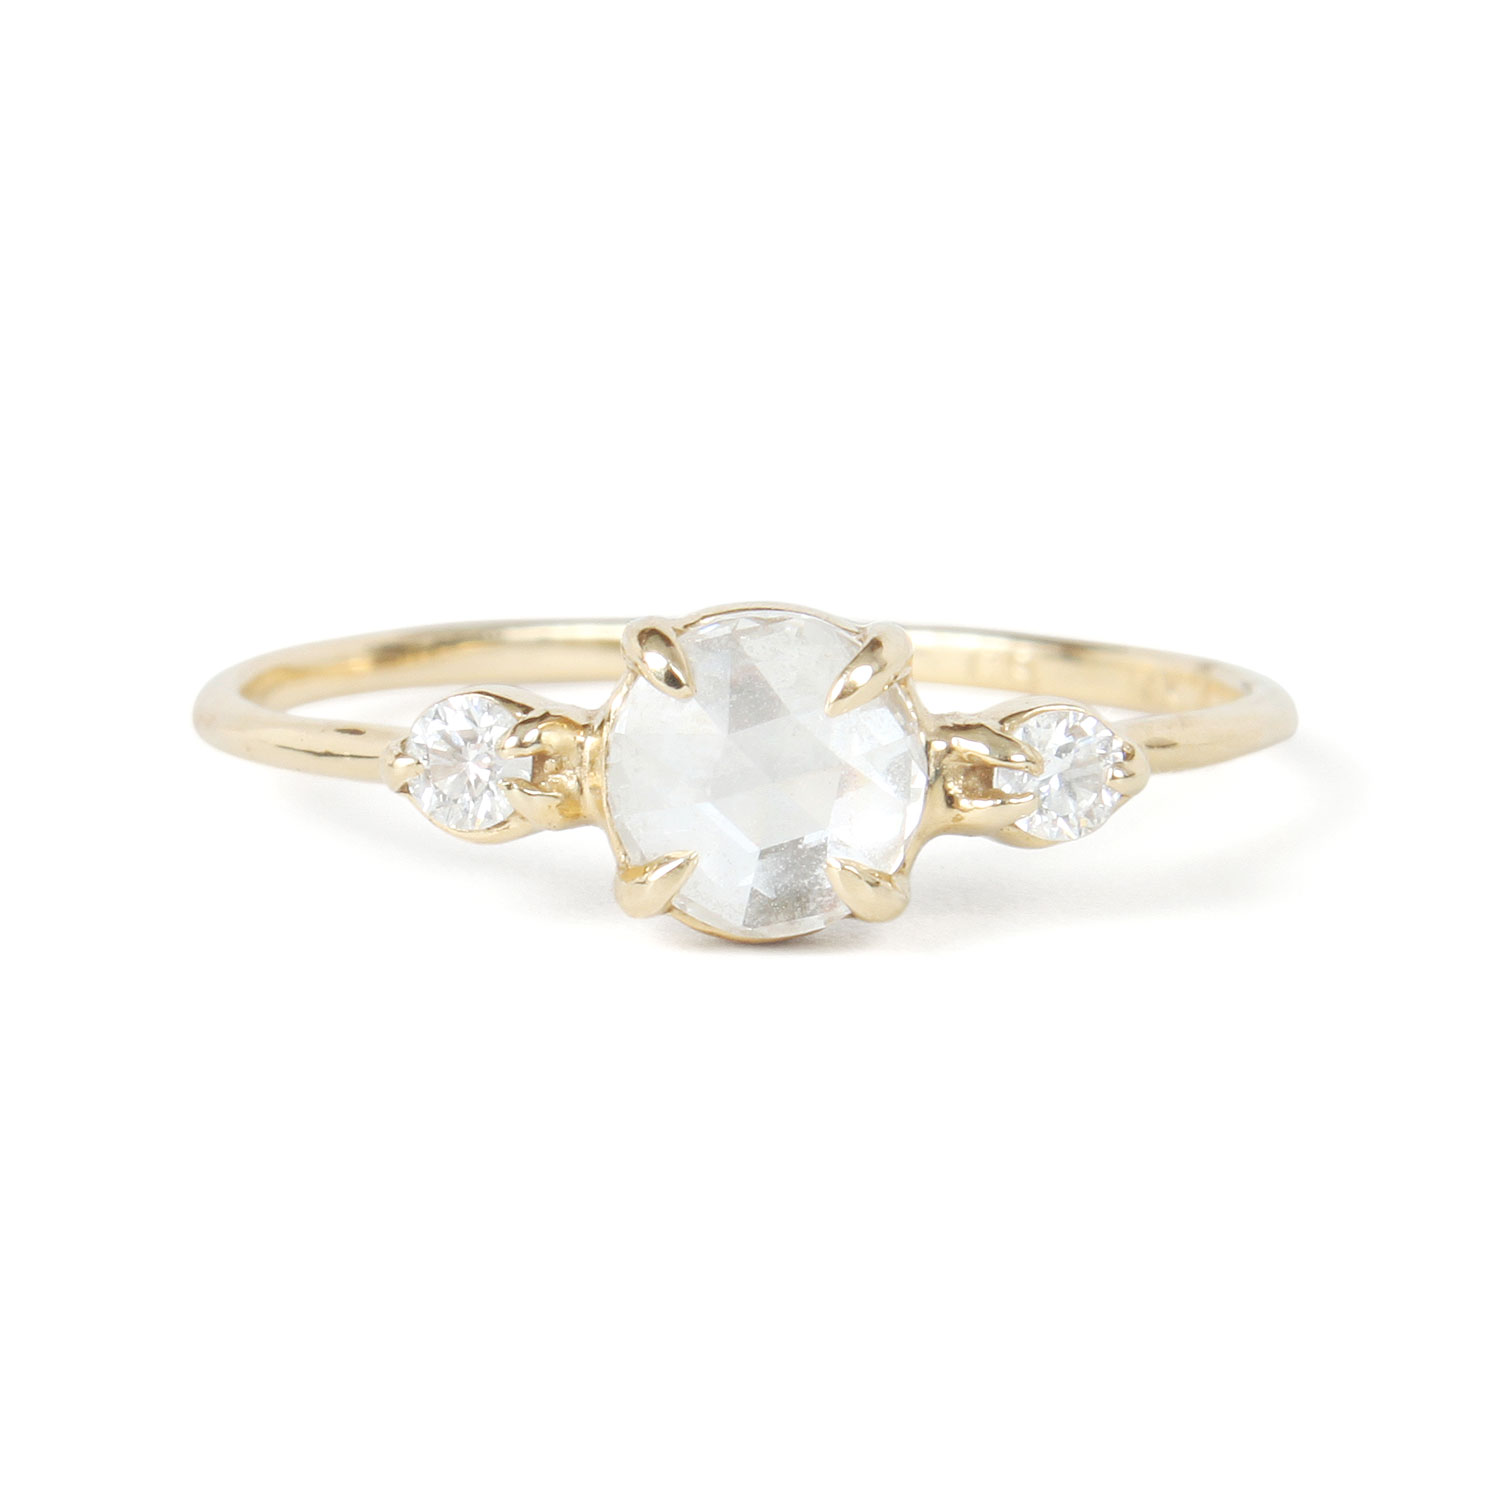 ring engagement rings next amore do dainty petite diana